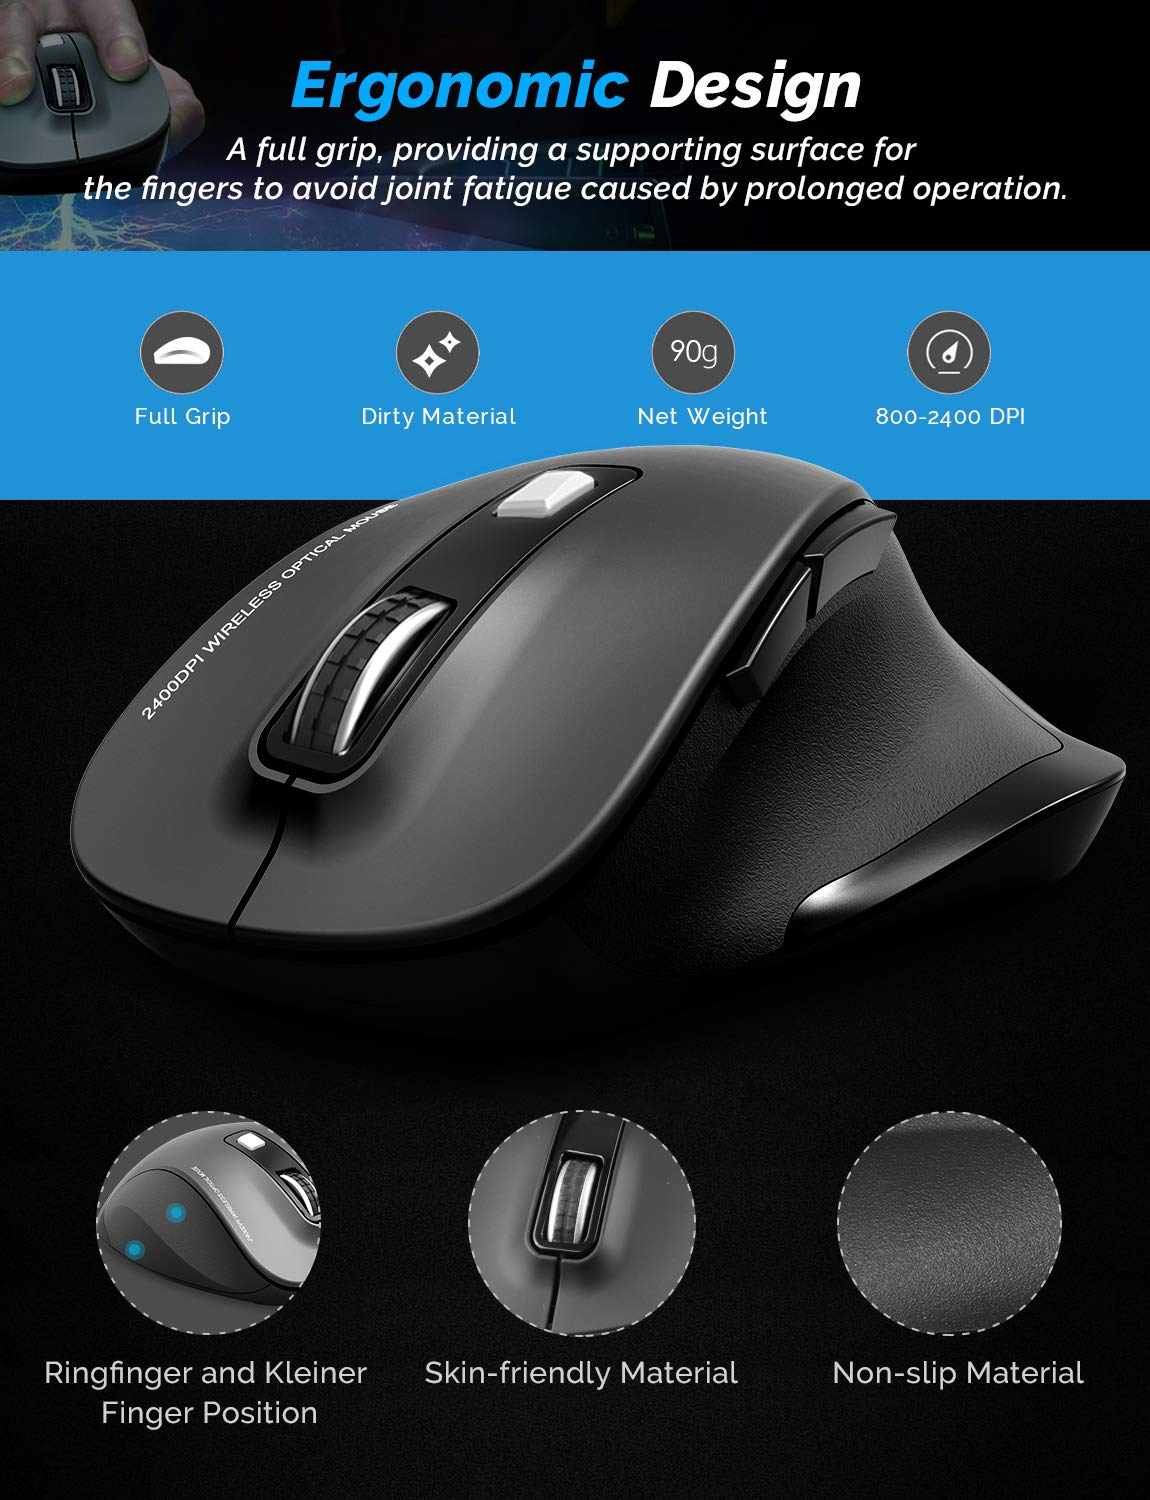 Wireless Mouse WisFox 2.4G USB Wireless Ergonomic Mouse Computer Mouse 6 Buttons Laptop Mouse USB Mouse with Nano Receiver 2400 DPI 5 Adjustment Levels Cordless Wireless Mice for Windows-Blue